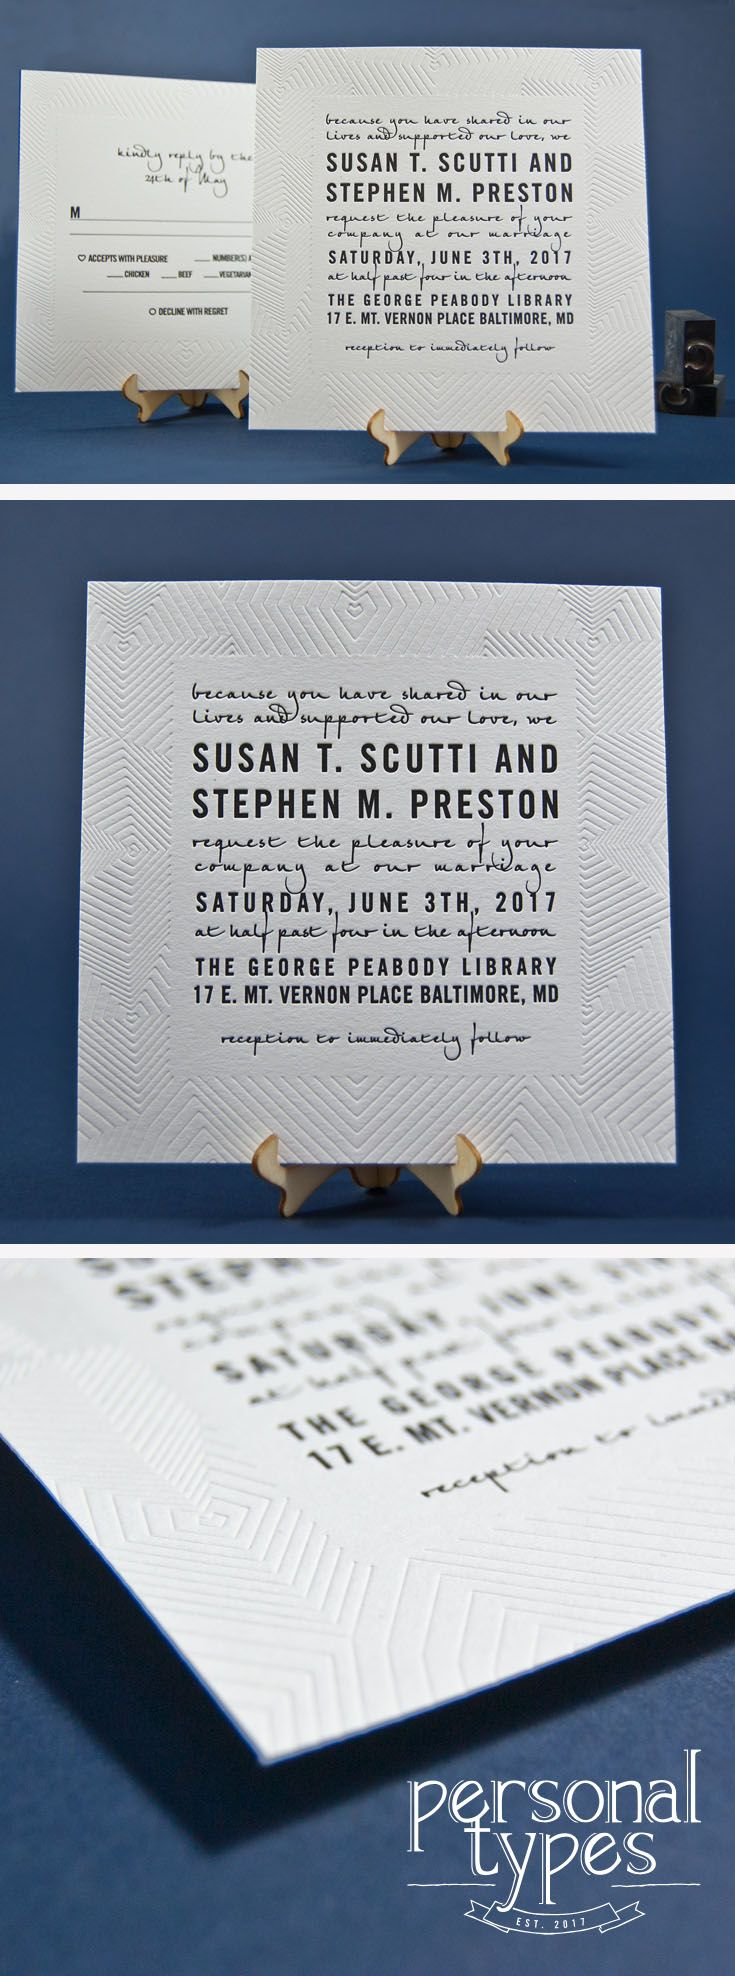 wedding invitation rsvp what does m mean%0A Modern Letterpress Wedding Invitation  This wedding suite not only has a  clean  modern look